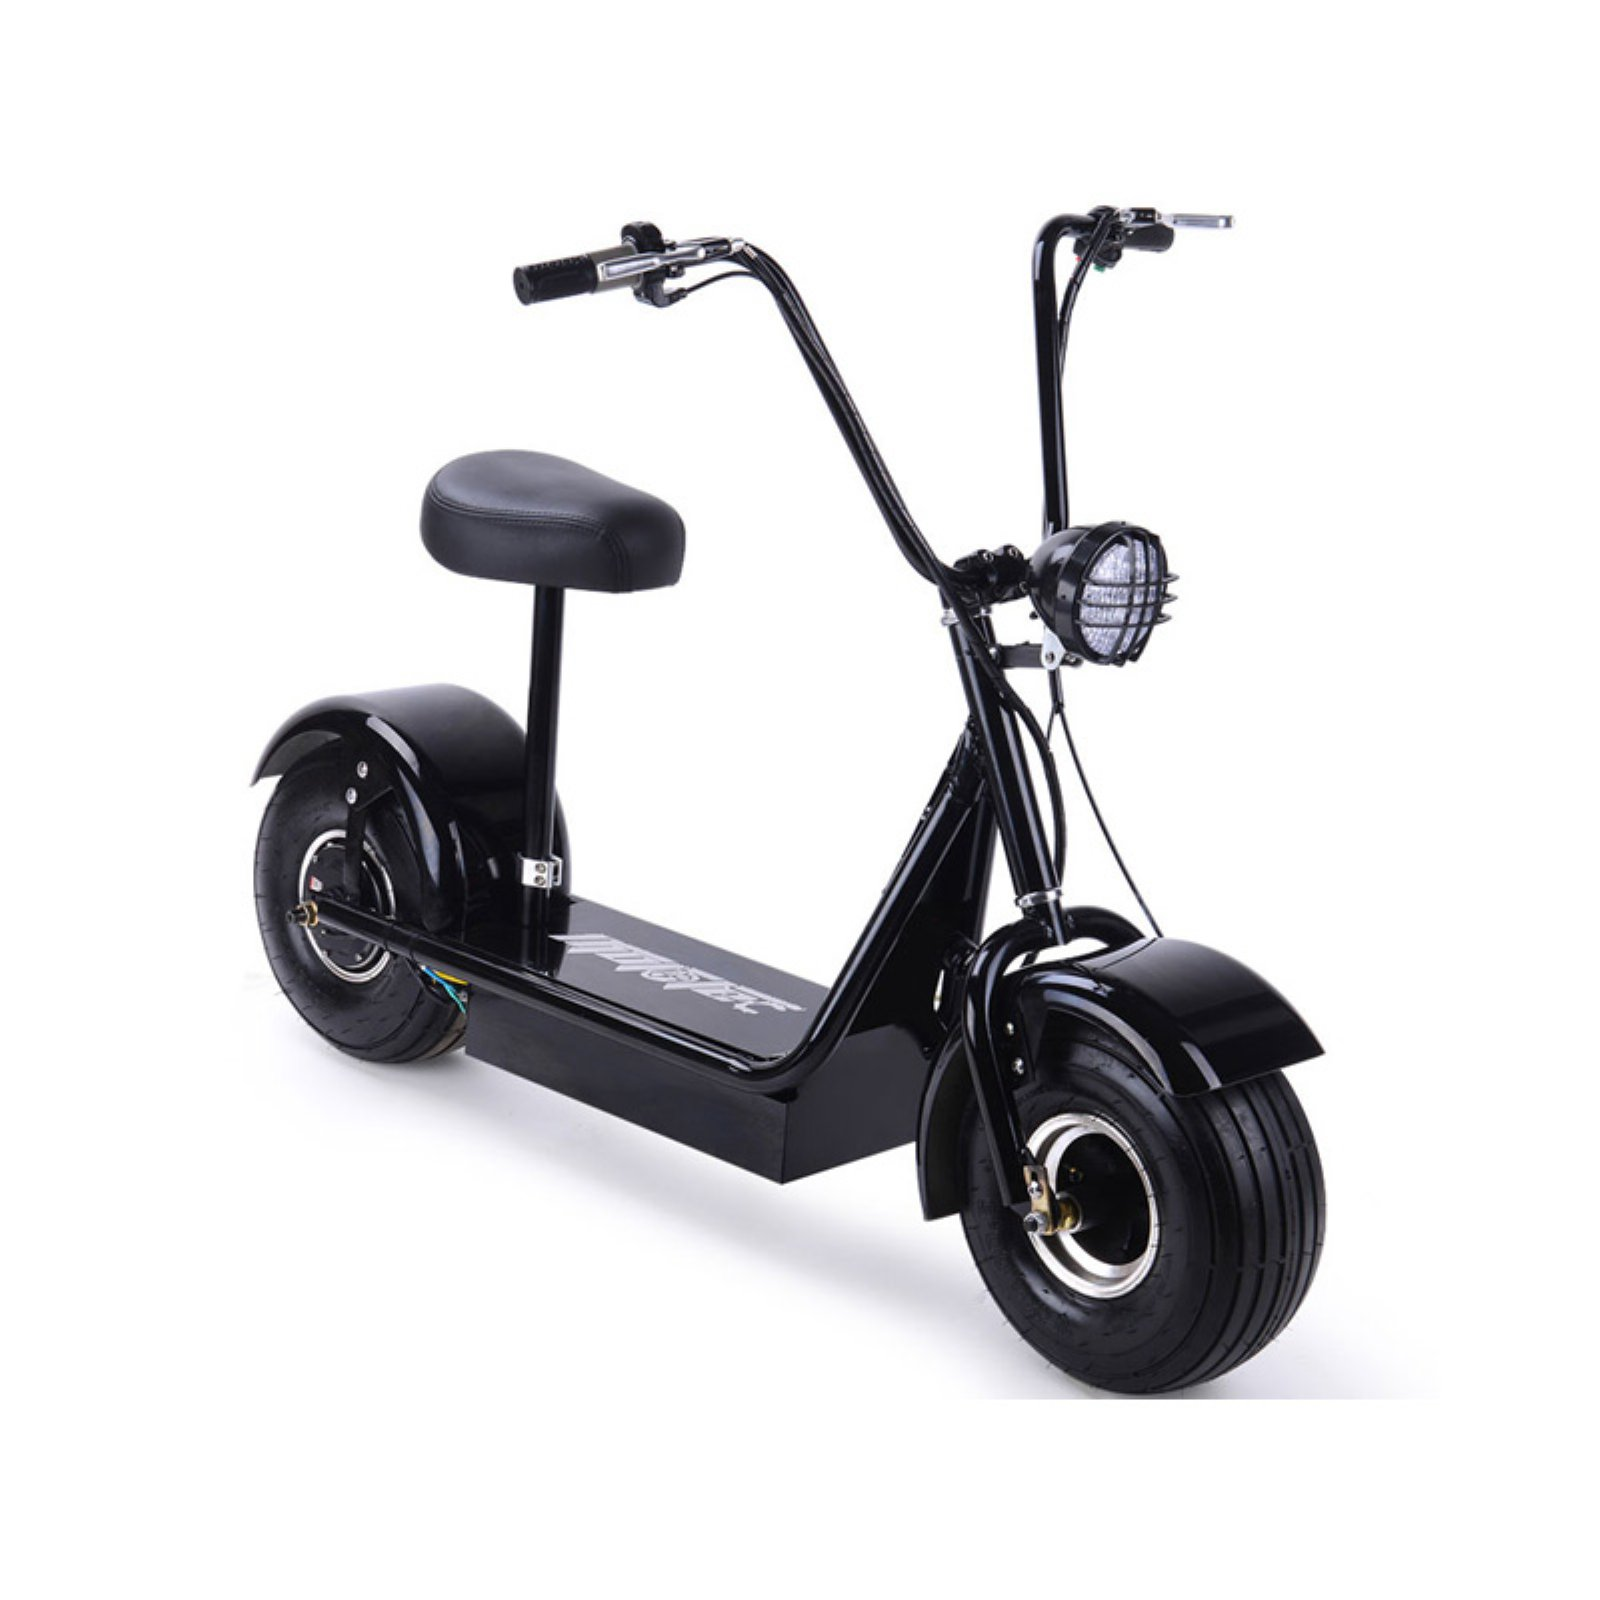 MotoTec Fatboy 48v 500w Fat Tire Electric Scooter